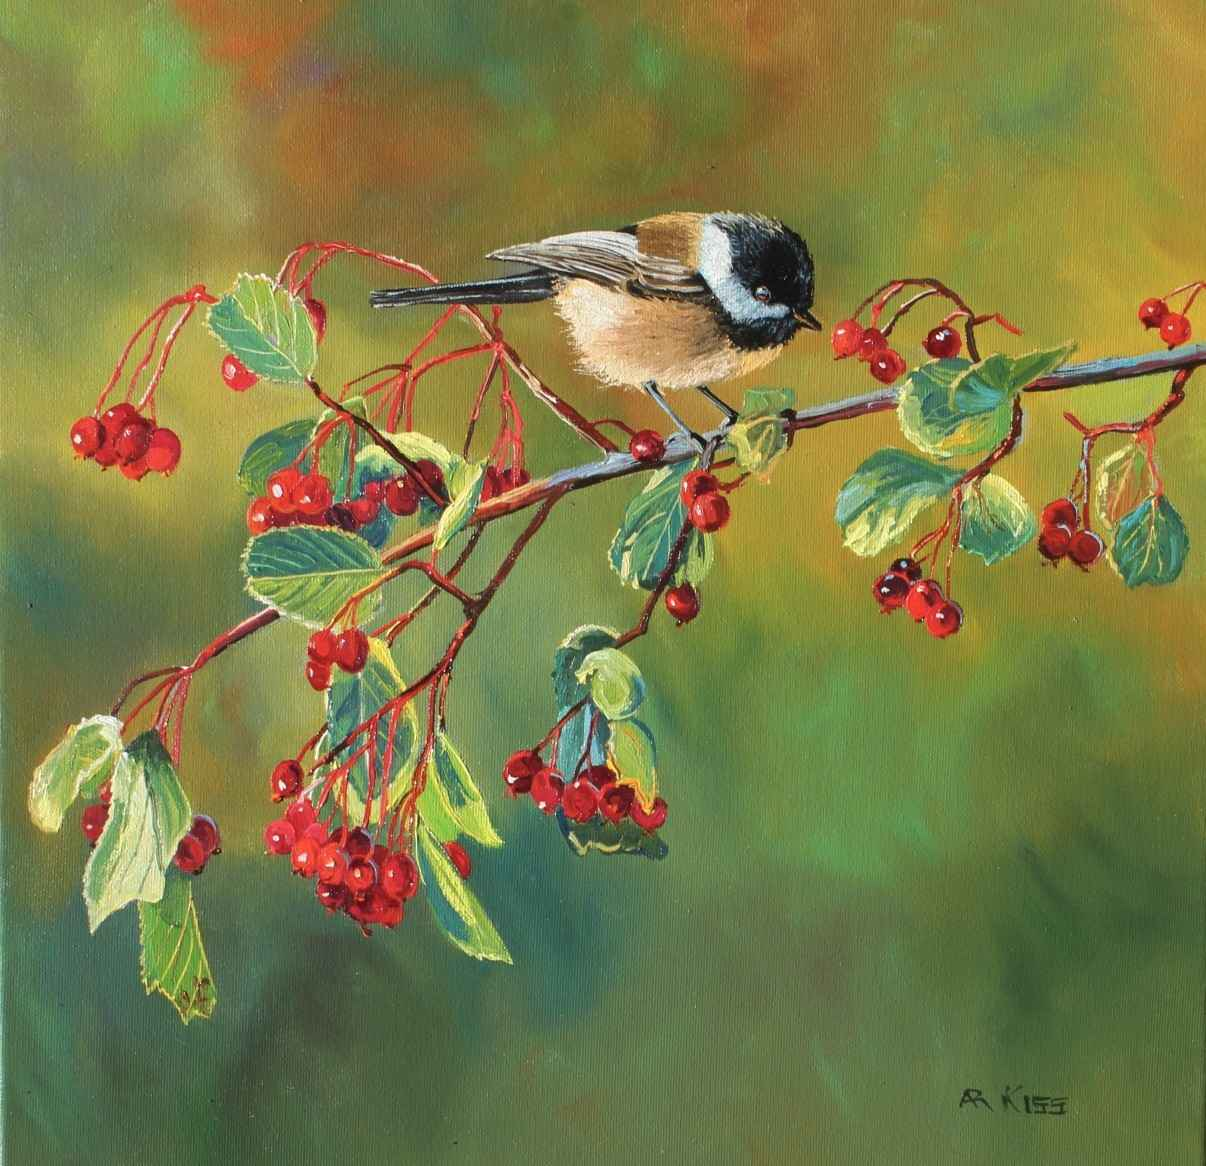 Chickadee Series-11105 by  Andrew Kiss - Masterpiece Online